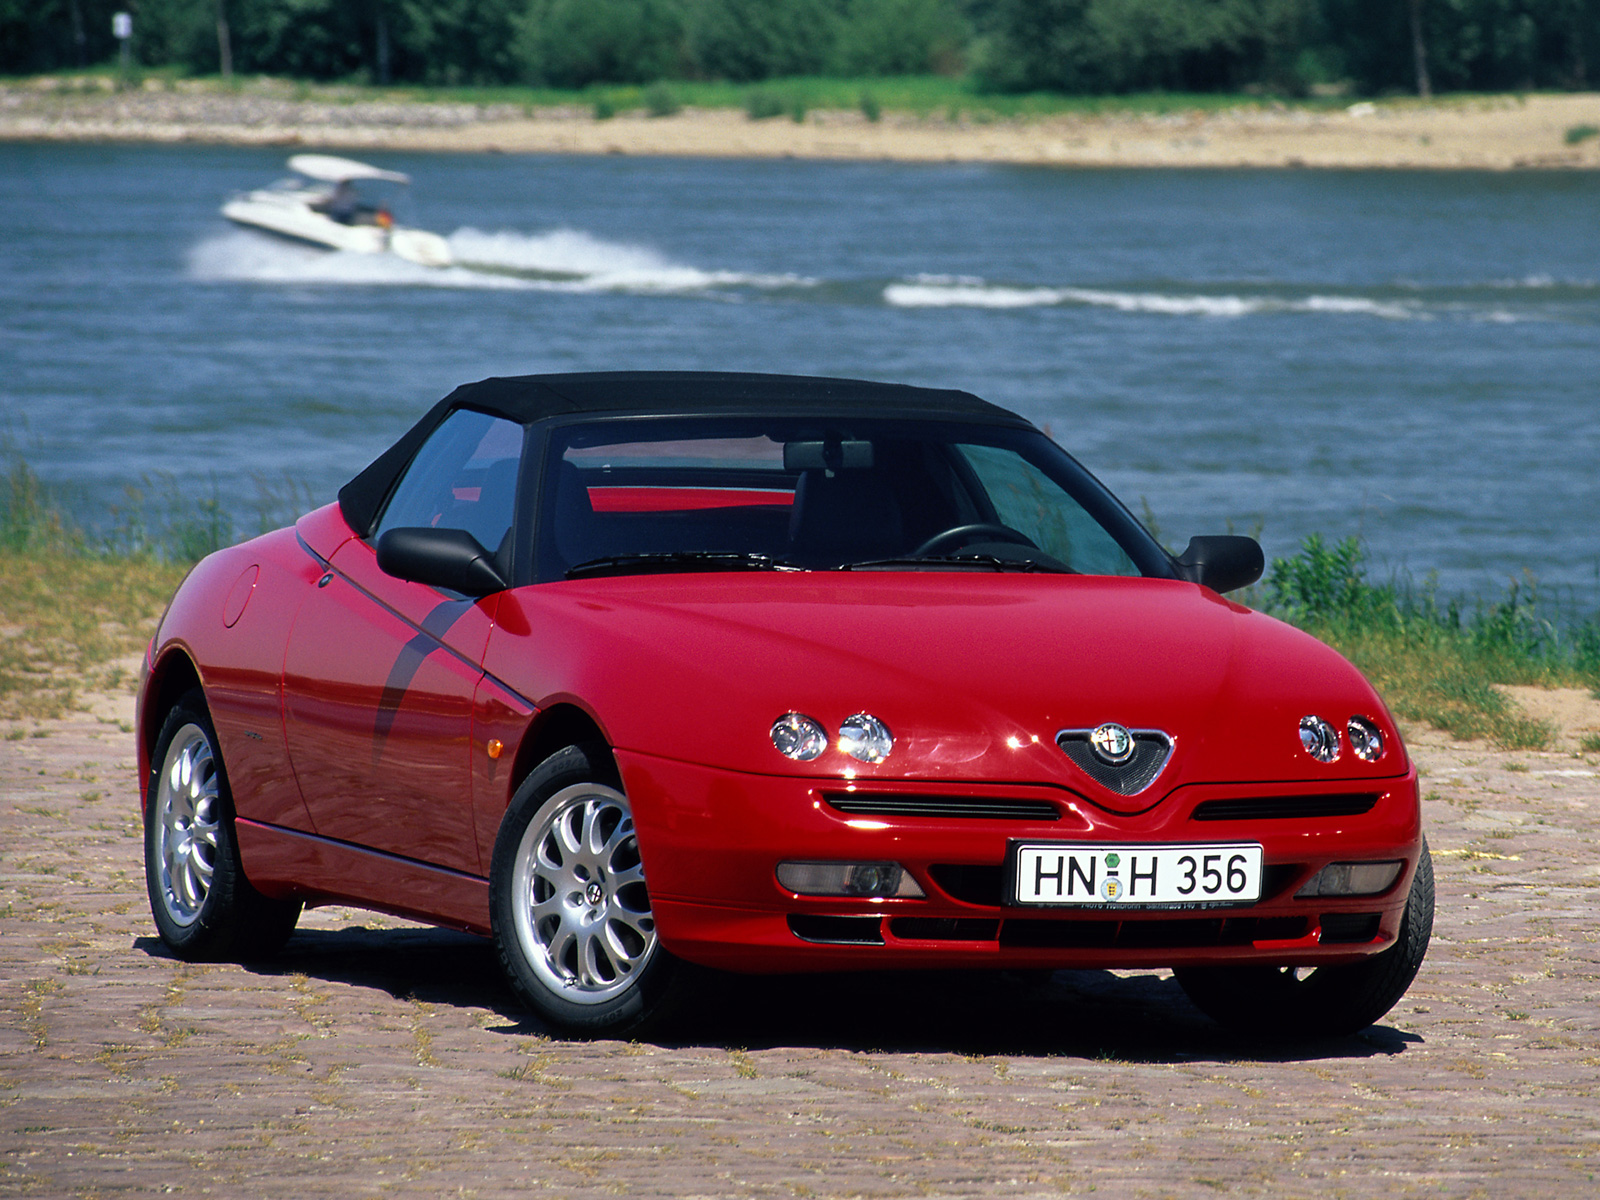 2002 alfa romeo gtv 916 pictures information and. Black Bedroom Furniture Sets. Home Design Ideas